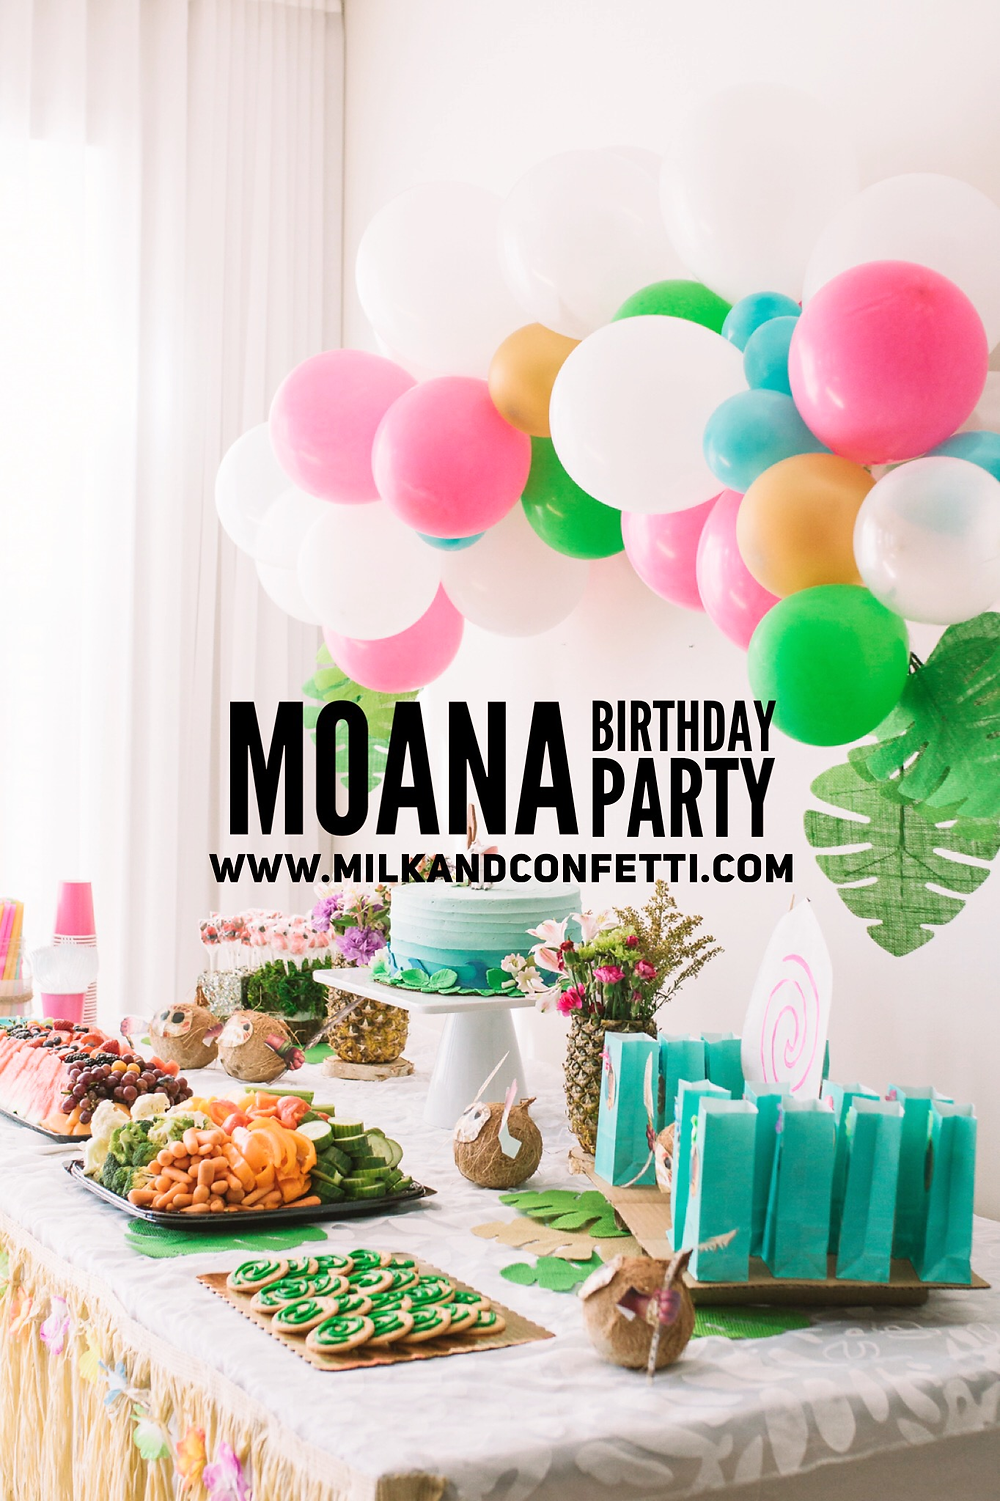 A Moana themed kids birthday party with a balloon garland backdrop, pineapple vases, coconuts and a Moana cake on a party table.